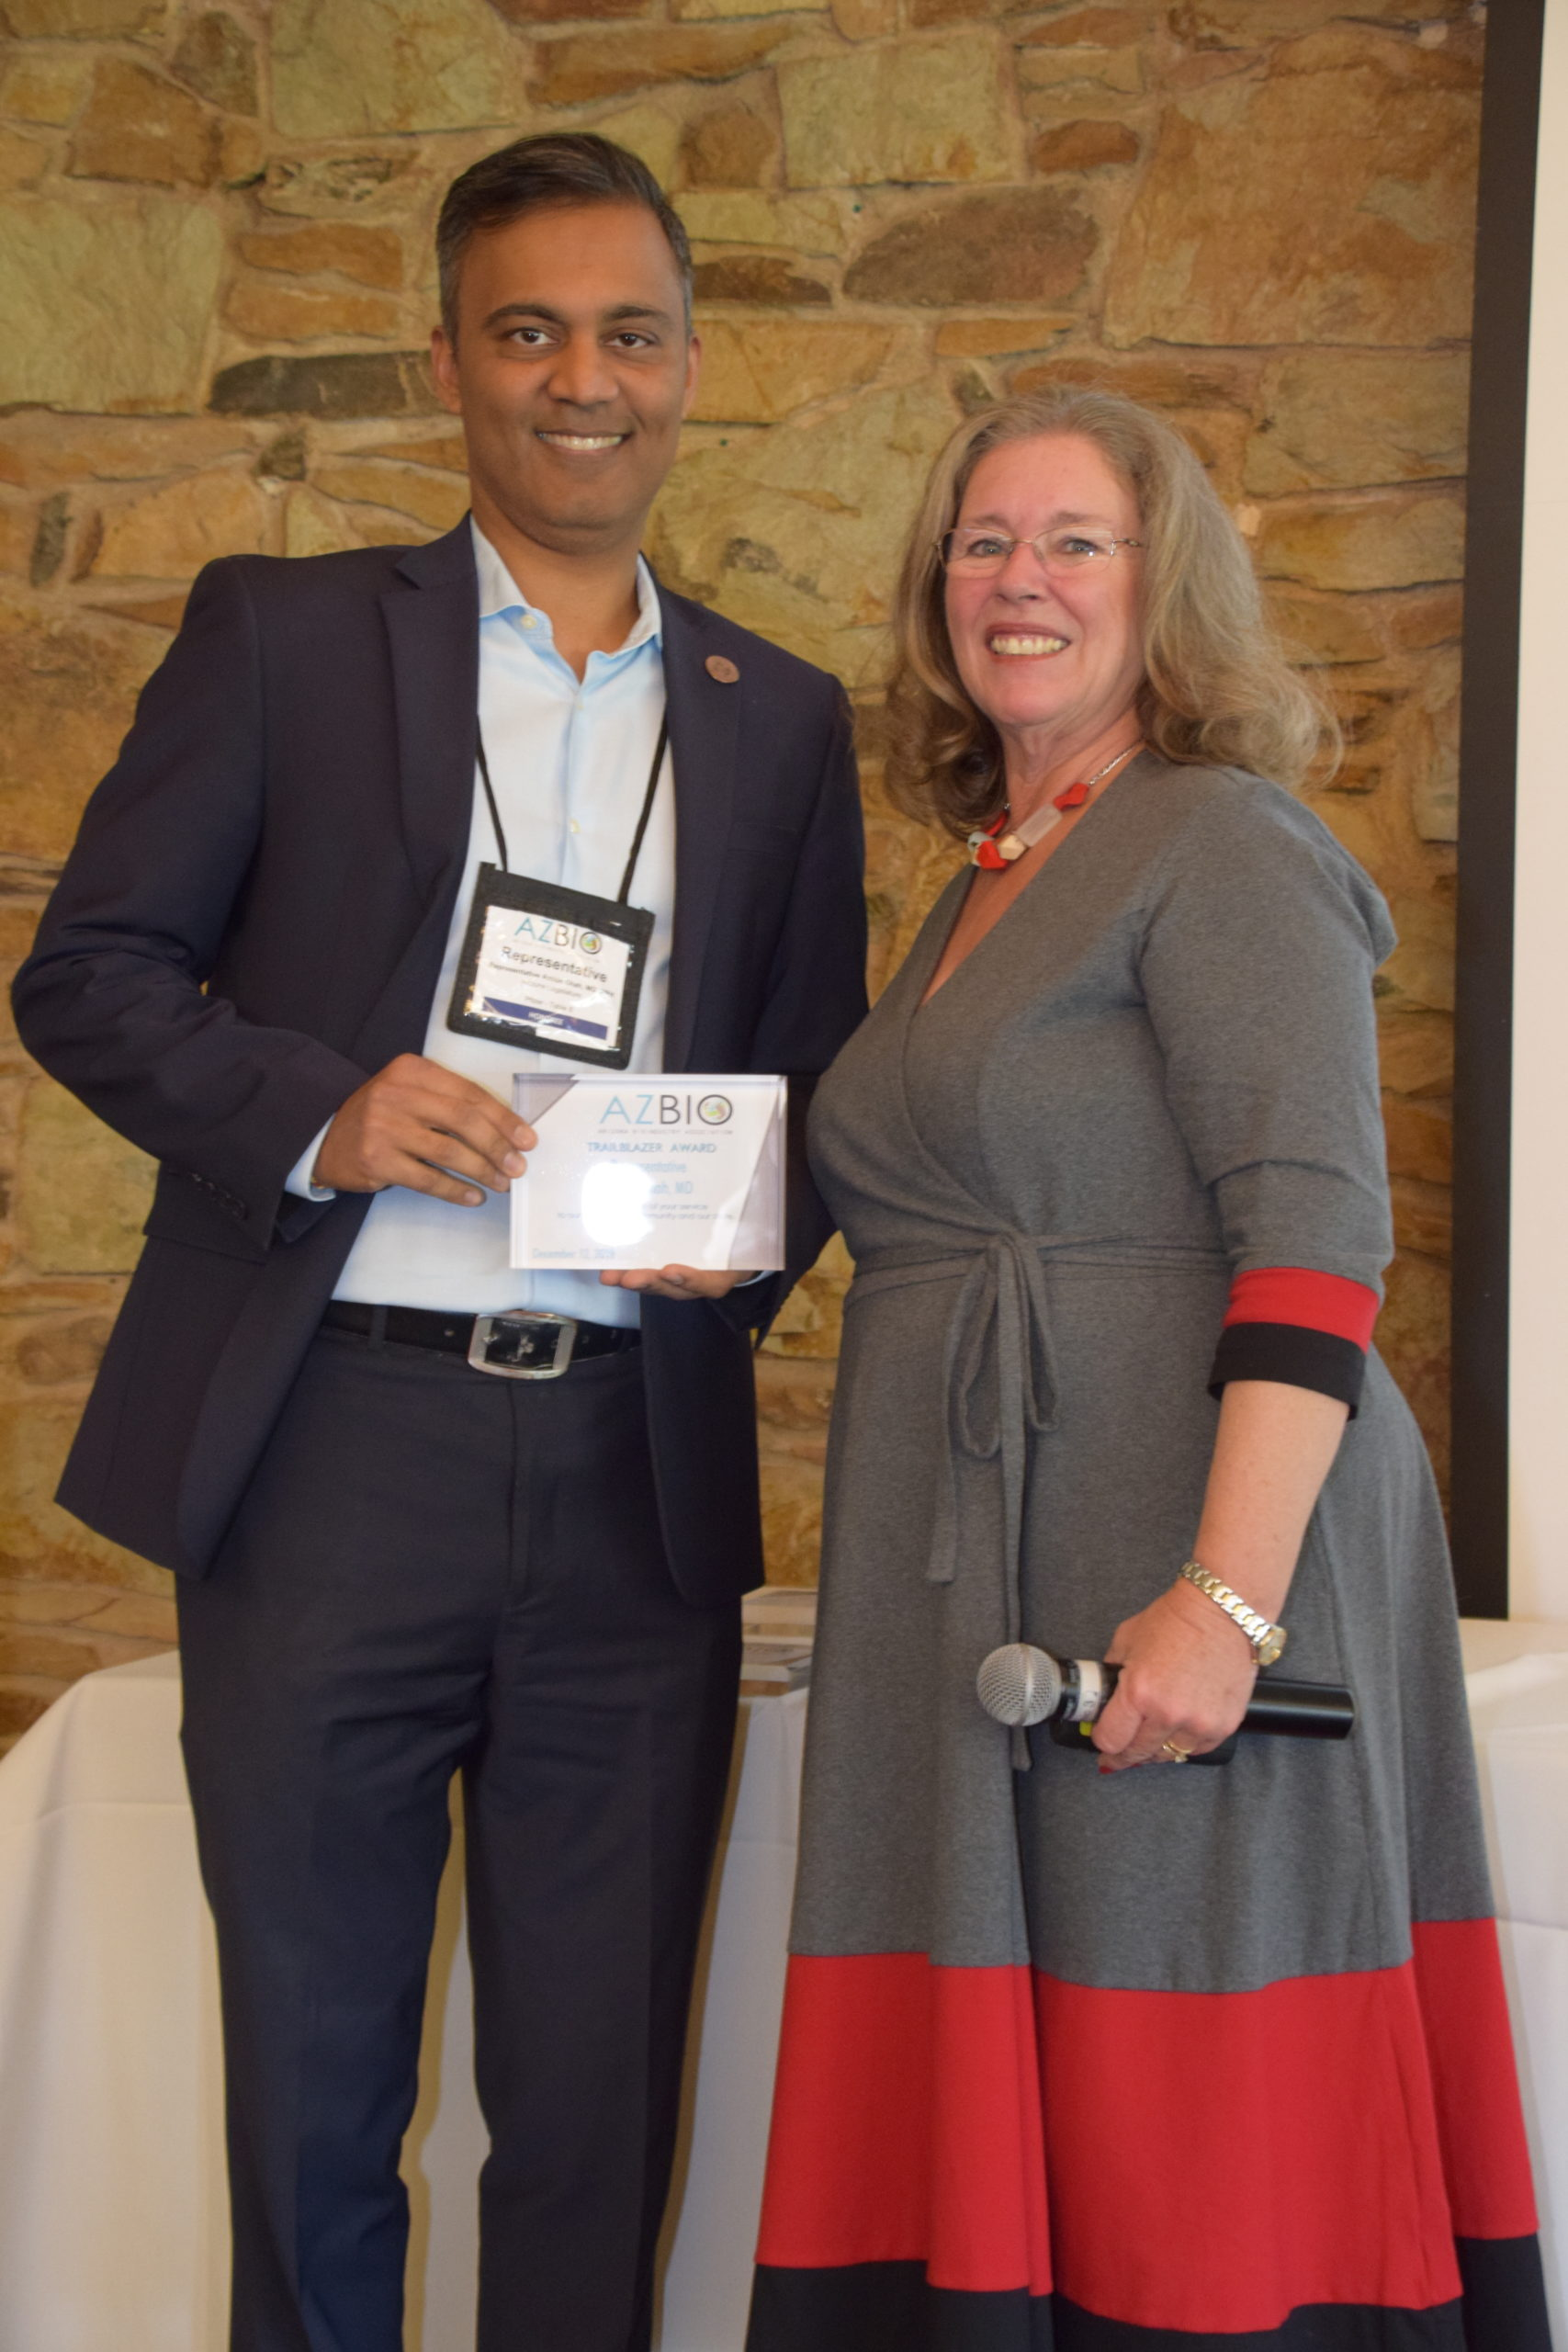 Emergency Physician and Arizona Legislator, Dr. Amish Shah, was honored as an AZBio Trailblazer in December for his leadership at the state legislature in 2019.